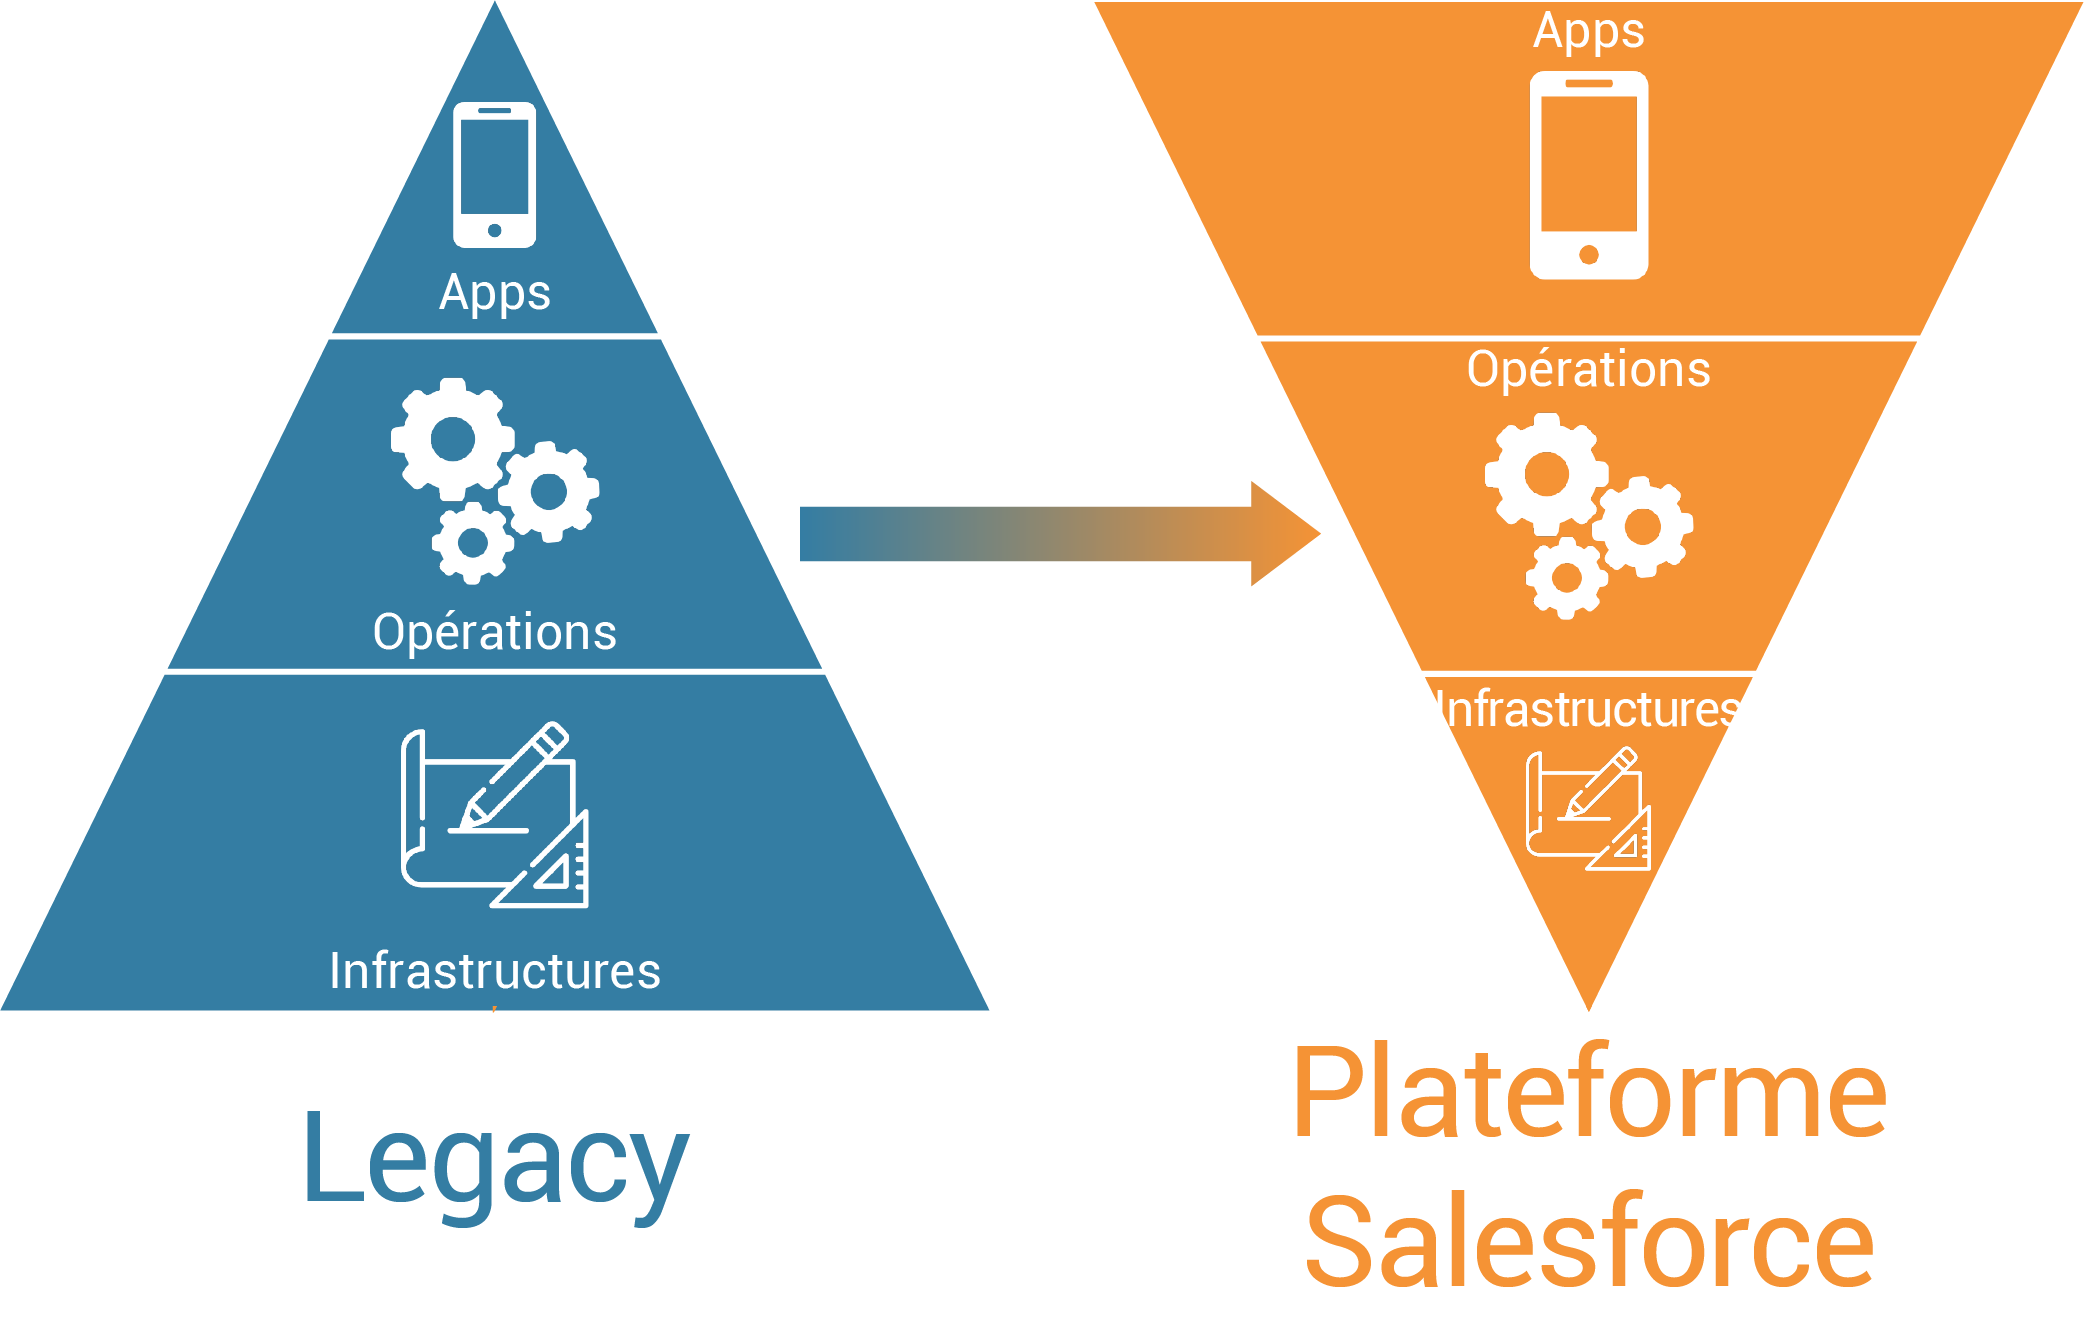 Salesforce plateforme apps opérations infrastructures legacy